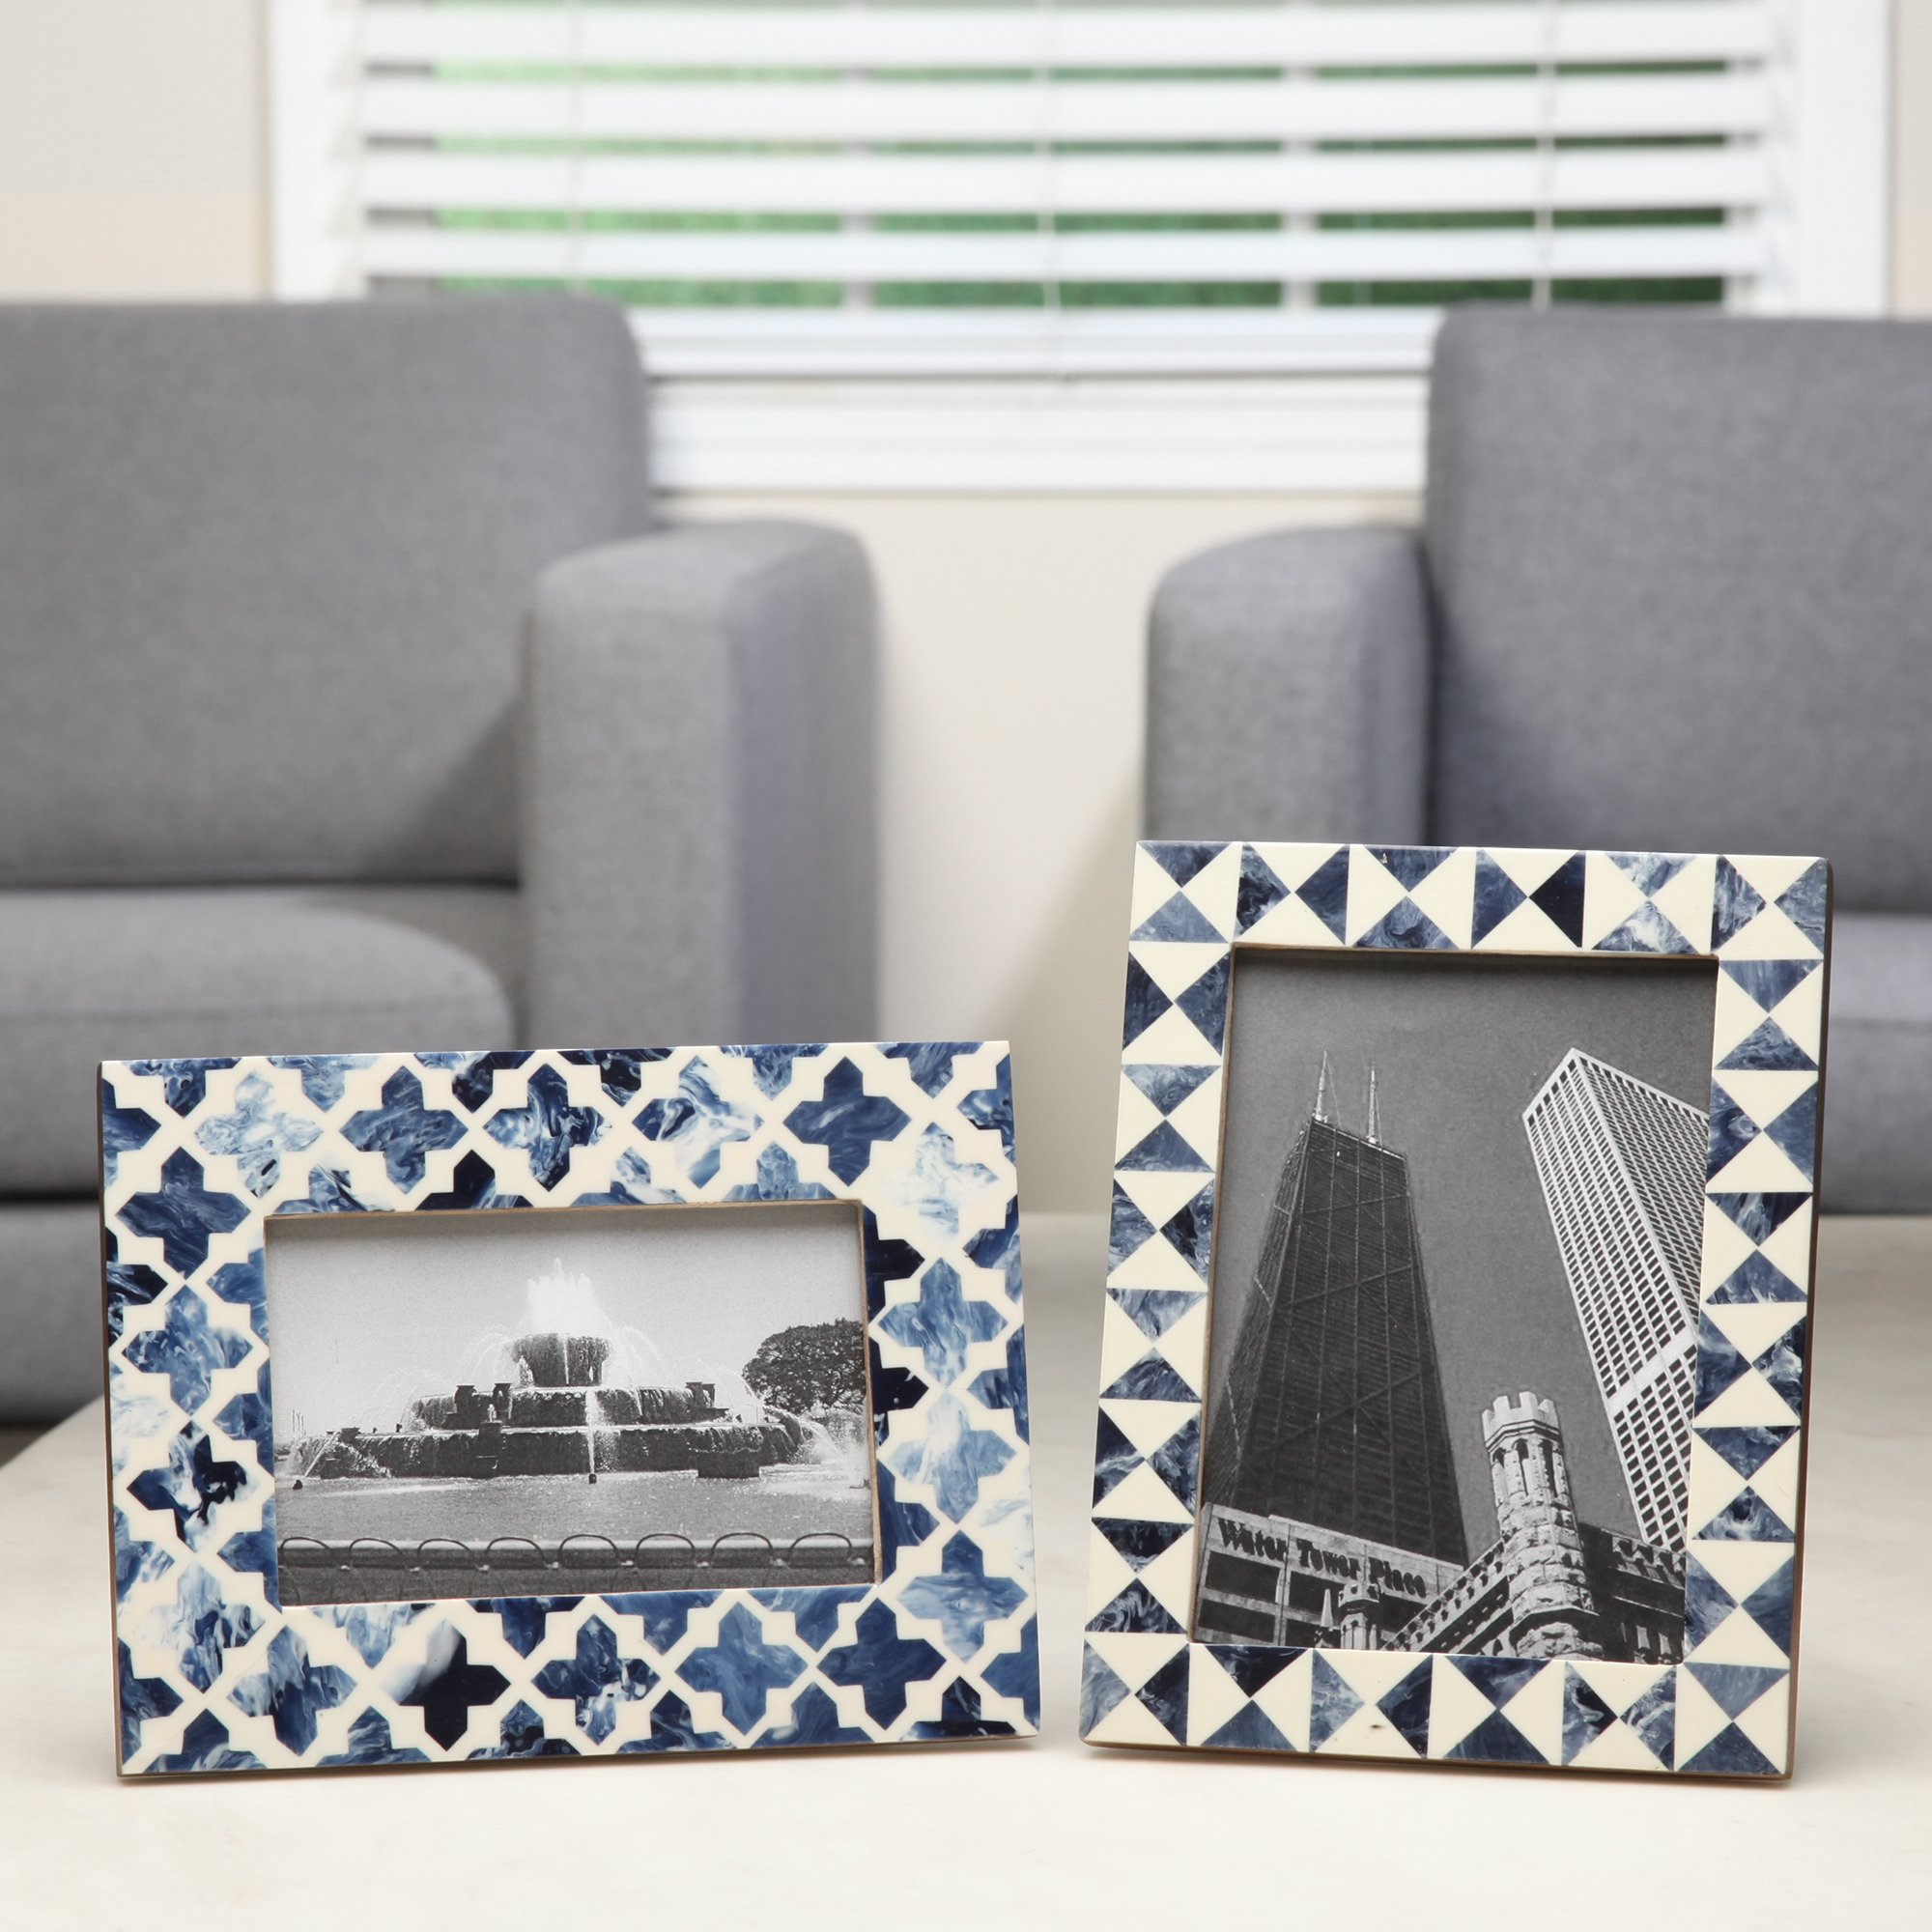 Hosley Indigo Geo Resin Tabletop Picture Frame, 5x7. Ideal Gift for Home, Wedding, Party. Home Office, Spa P2